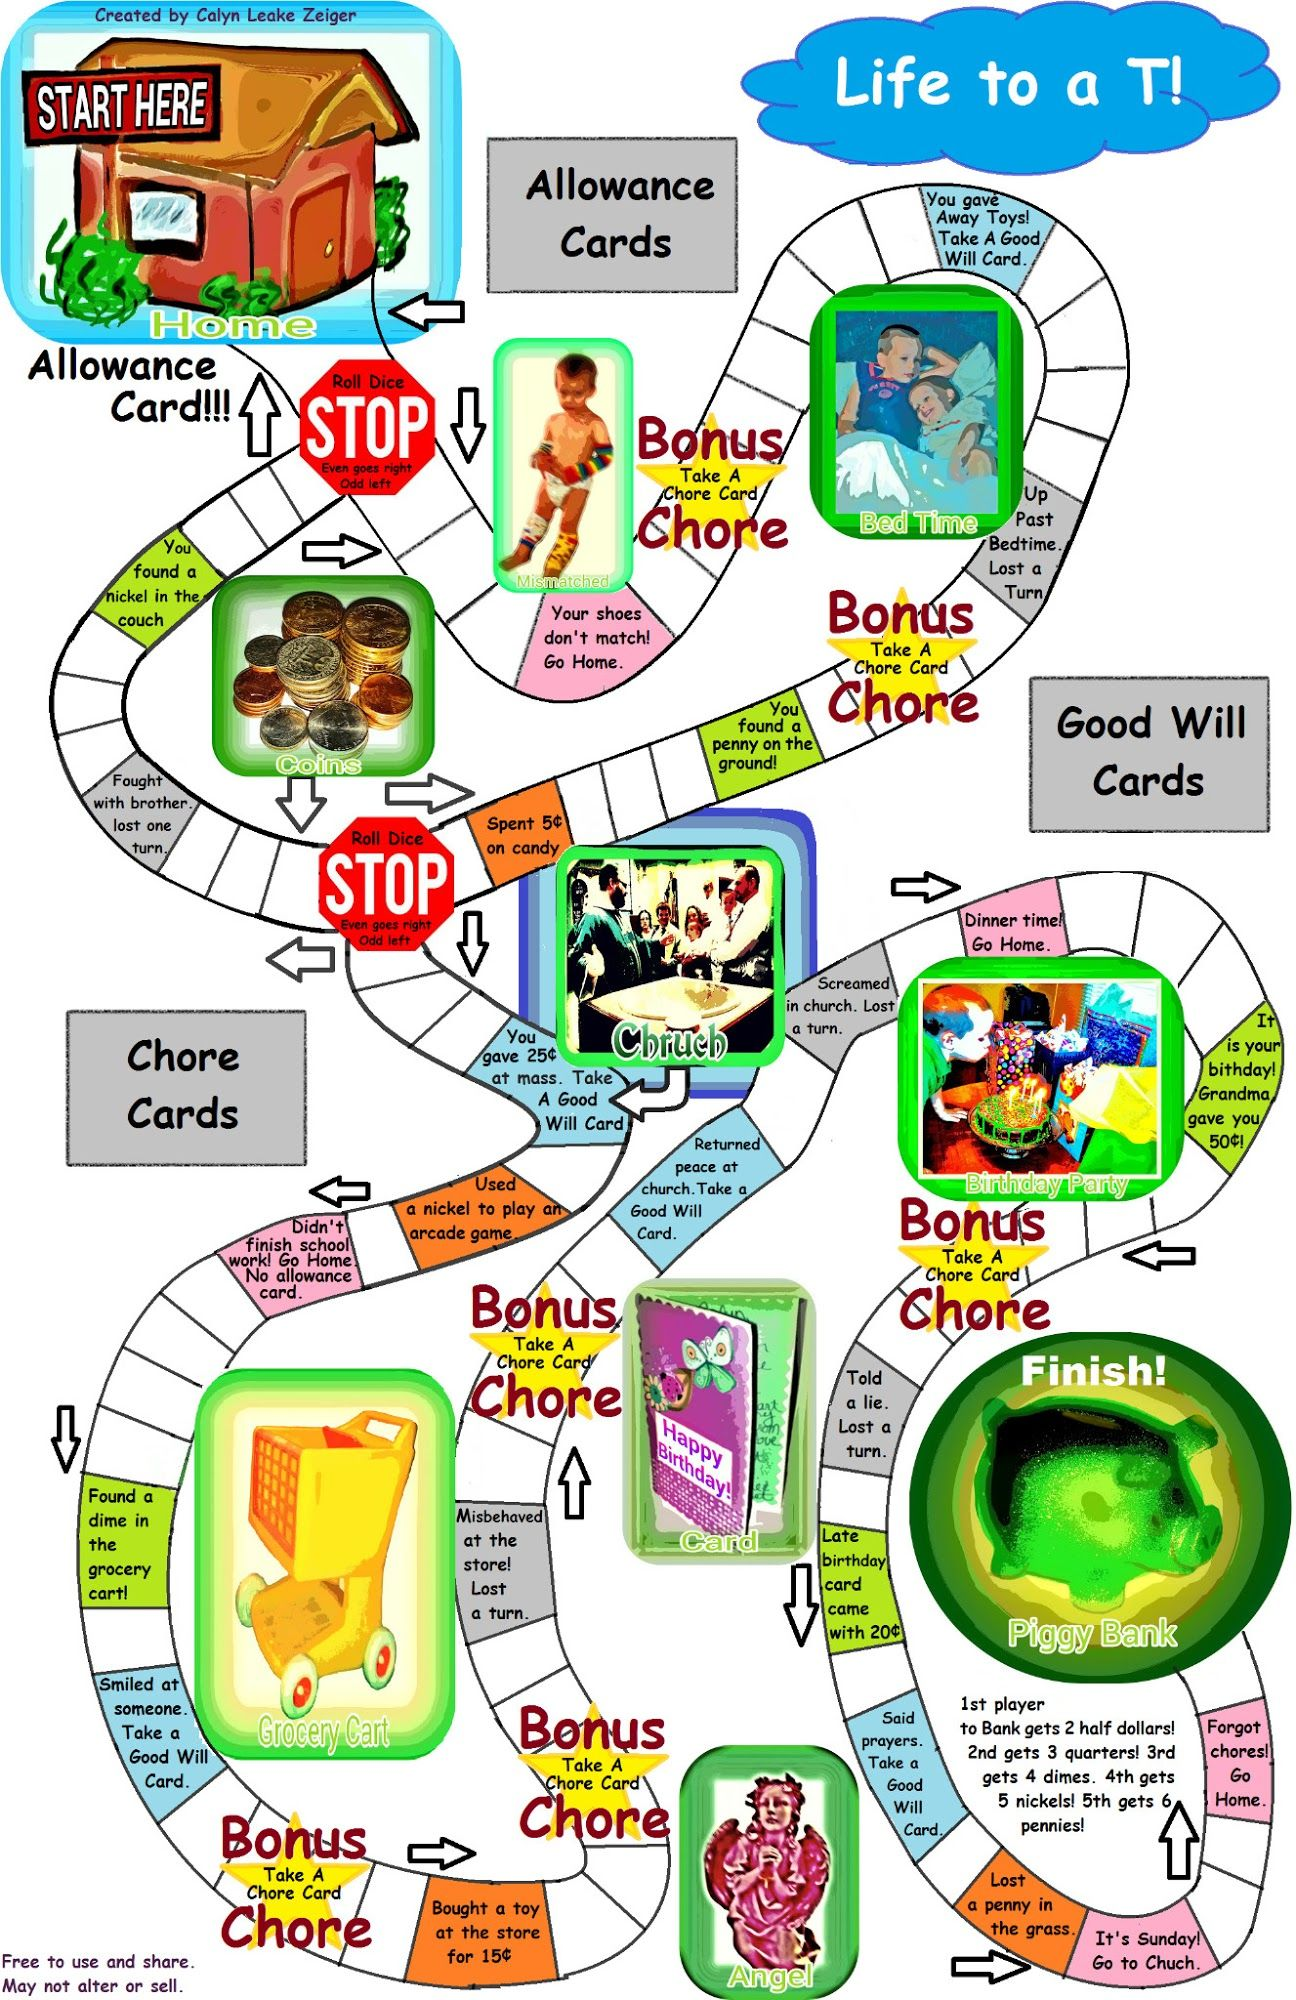 Printable board games for kids yahoo image search results inspiring printable board game of life printable images free printable game boards life board game template game of life zapped edition board pronofoot35fo Images